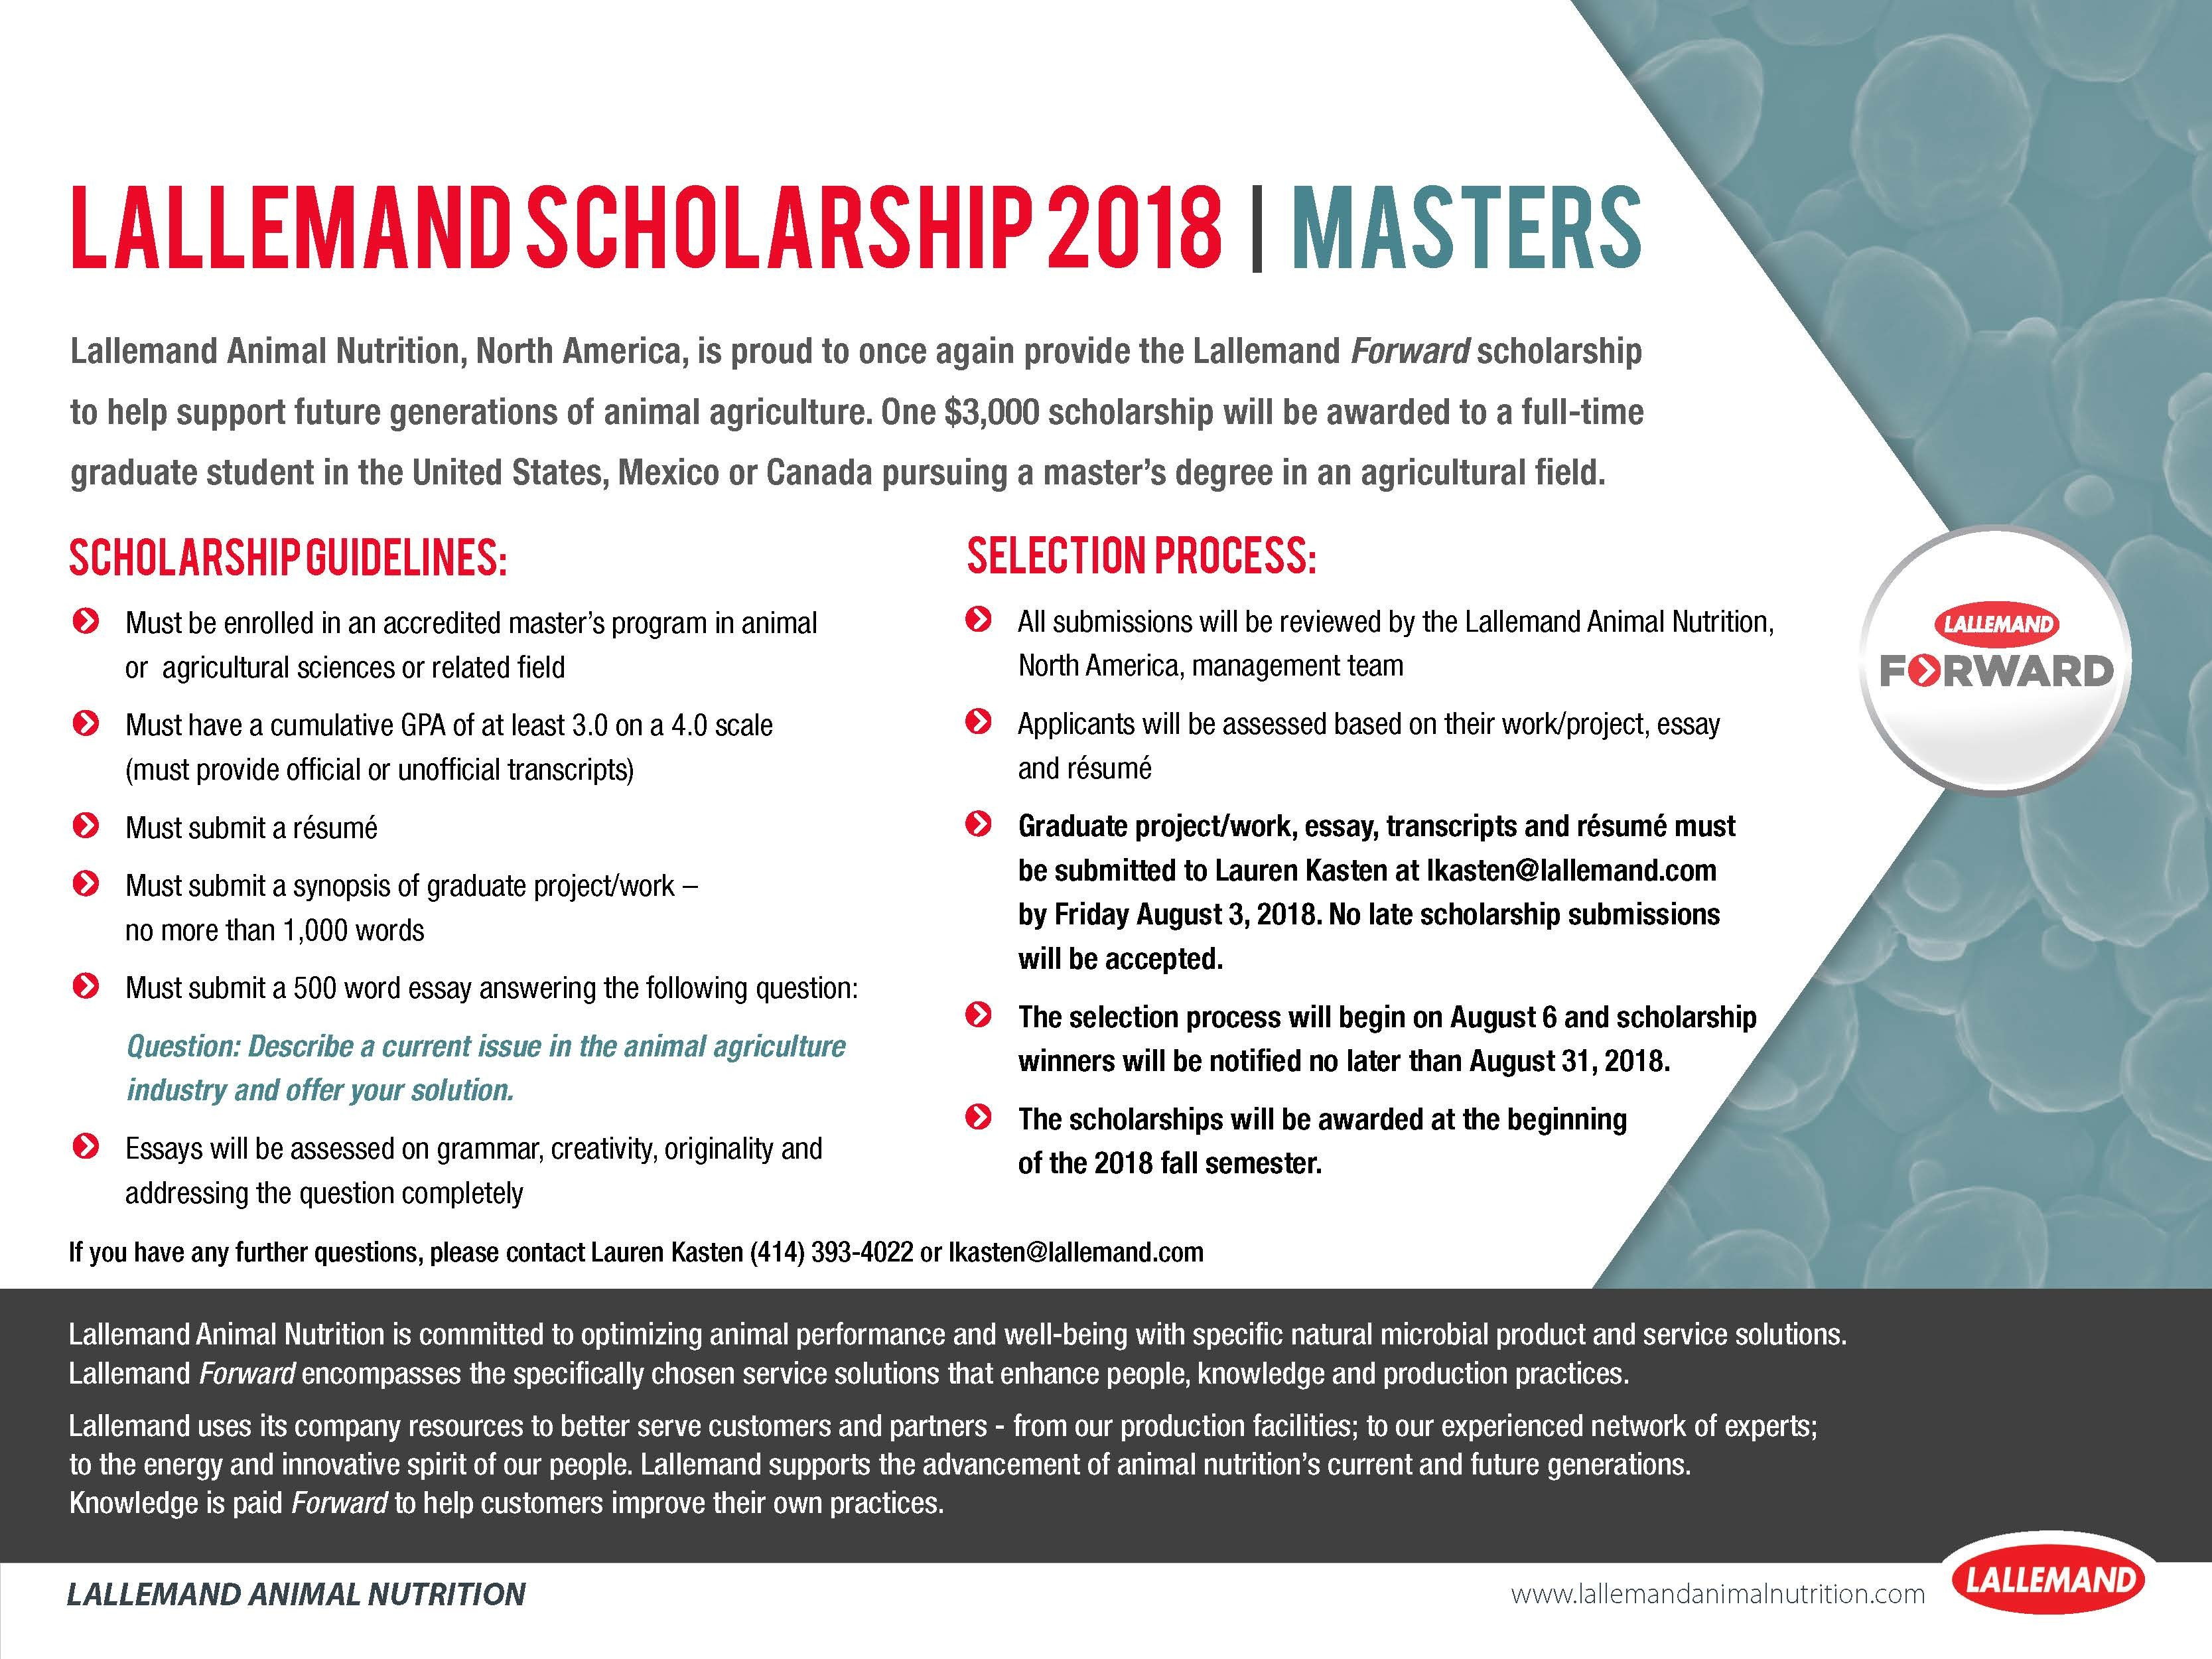 March 2019 Calendar Sri Lanka Más Reciente Lallemand Animal Nutrition Offers Scholarships for Fourth Year Of March 2019 Calendar Sri Lanka Más Arriba-a-fecha Sri Lanka Permanent Mission to the United Nations